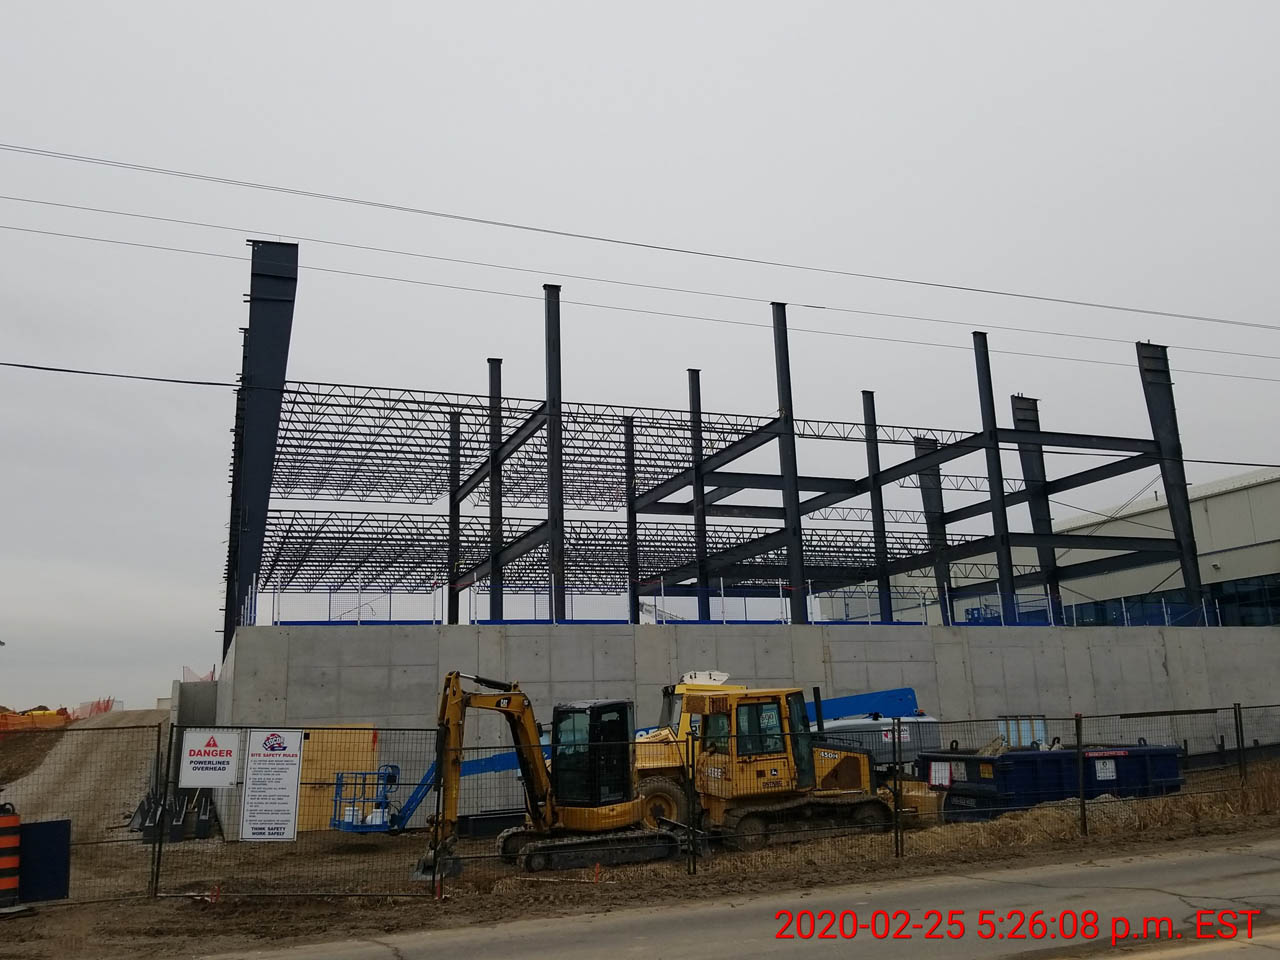 Institutional Project - BB GUNN offers pre-engineered metal building erecting, installation of wall cladding systems, steel roofs and insulated metal panel, structural steel, welding, and steel decking.